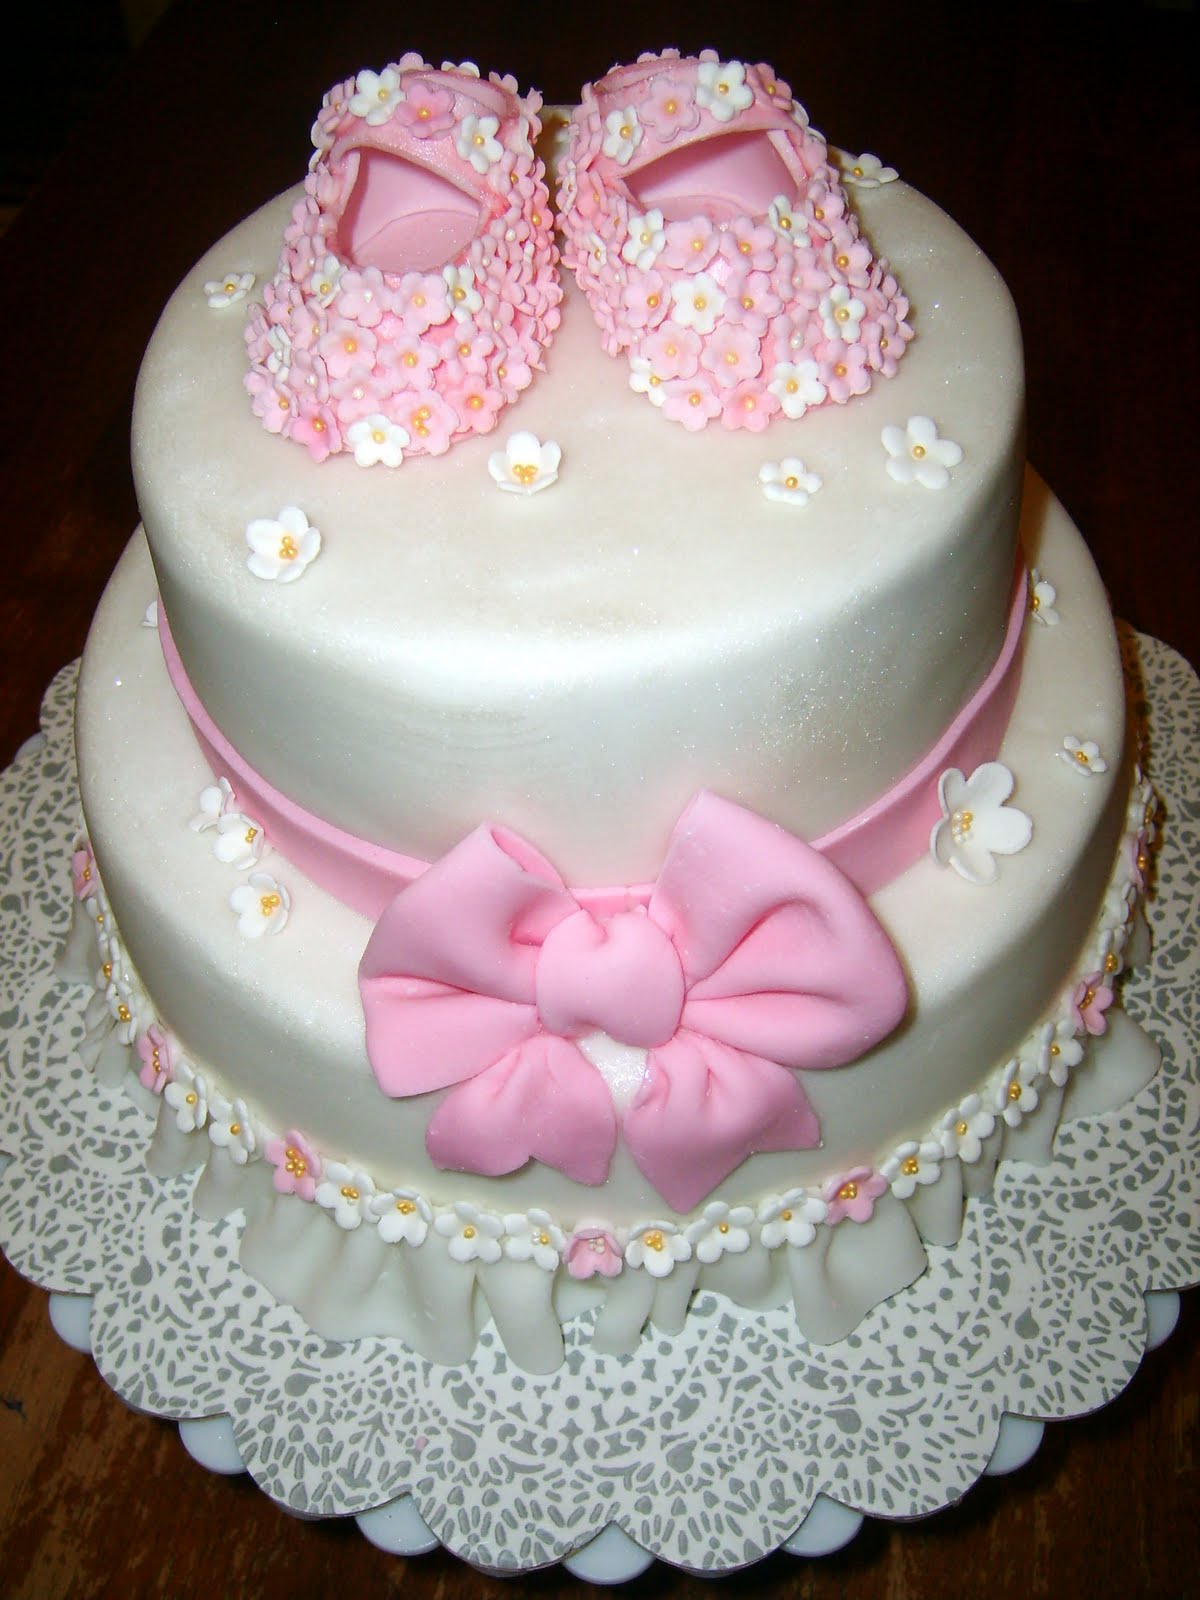 living room decorating ideas baby shower cakes and cupcakes, Baby shower